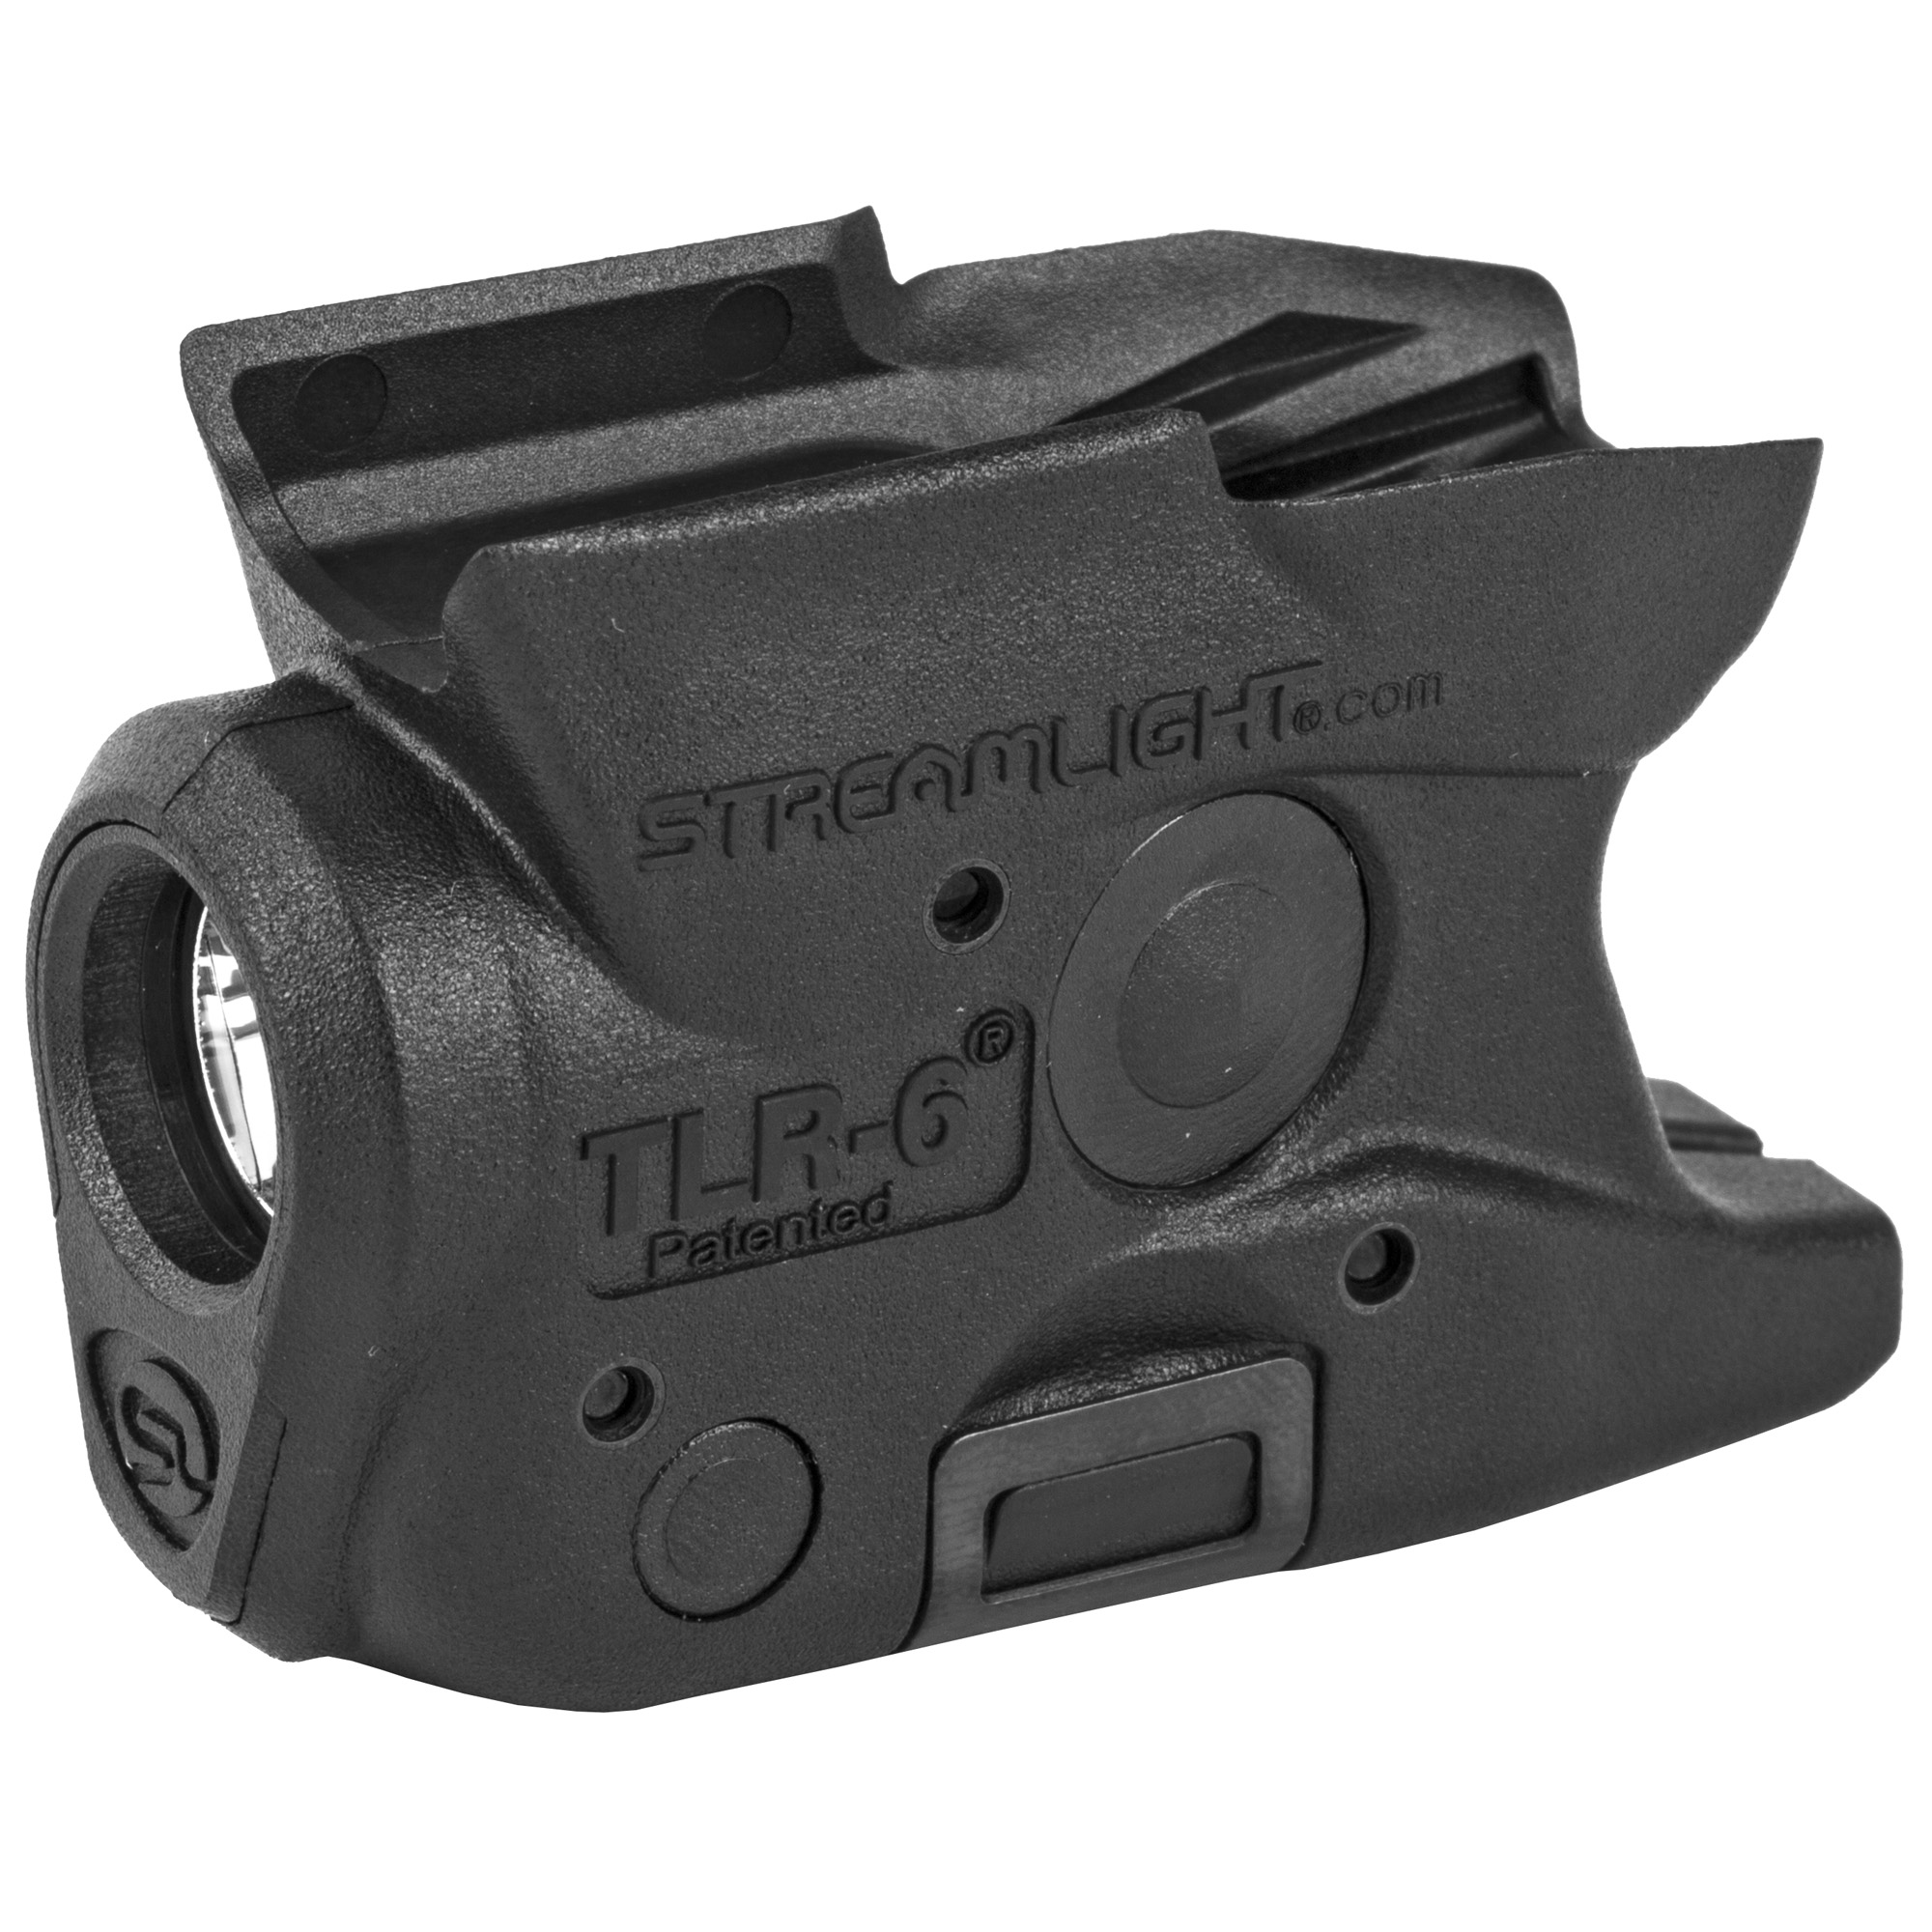 "Based on the popular ultra-compact TLR-6"" this non-laser model is designed to securely attach to the trigger guard on hand guns and features tool-less battery replacement without removal from the weapon."